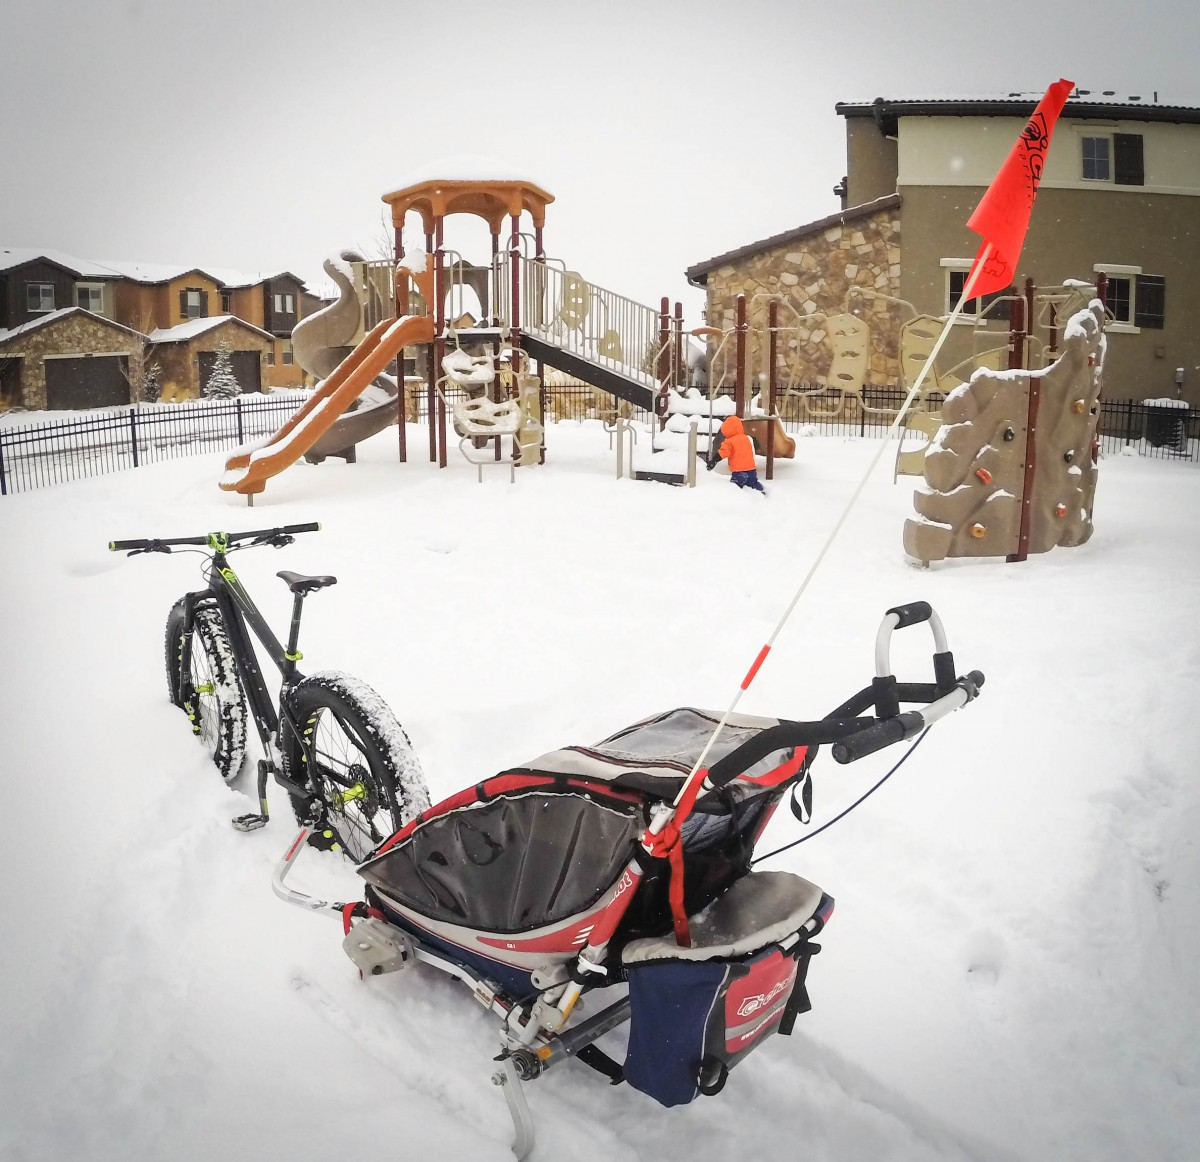 Riding around the neighborhood and taking your child to his or favorite playground is a great way to get them excited about fat biking in the snow with you